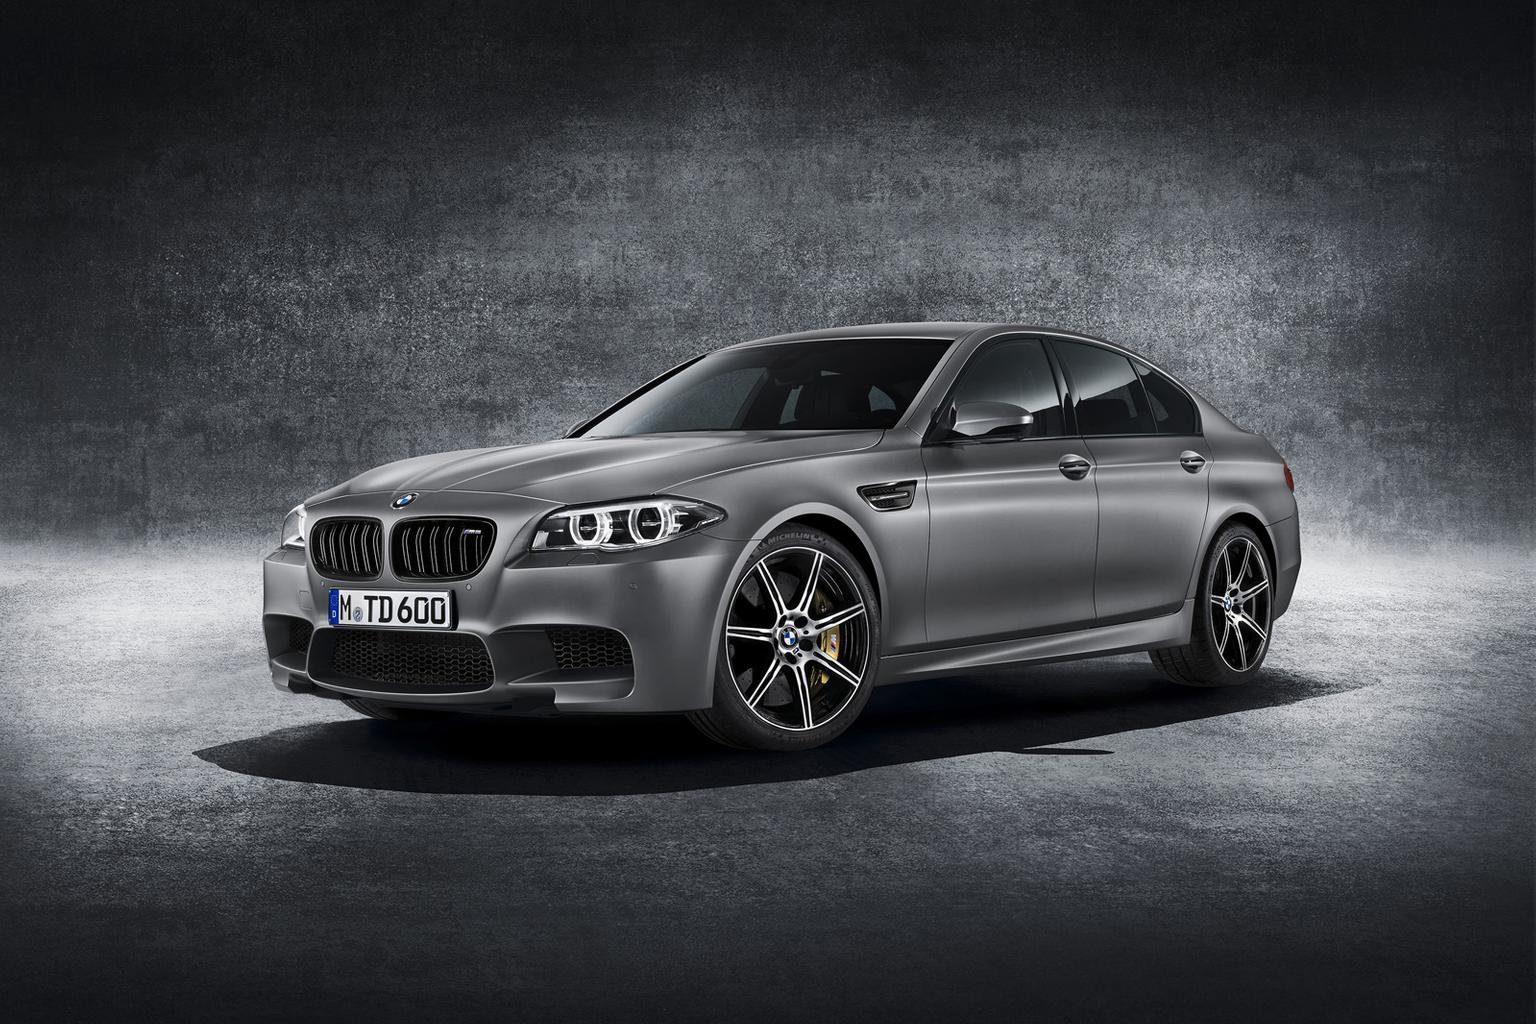 News round-up: BMW M5 30 Jahre and Peugeot RCZ Red Carbon editions